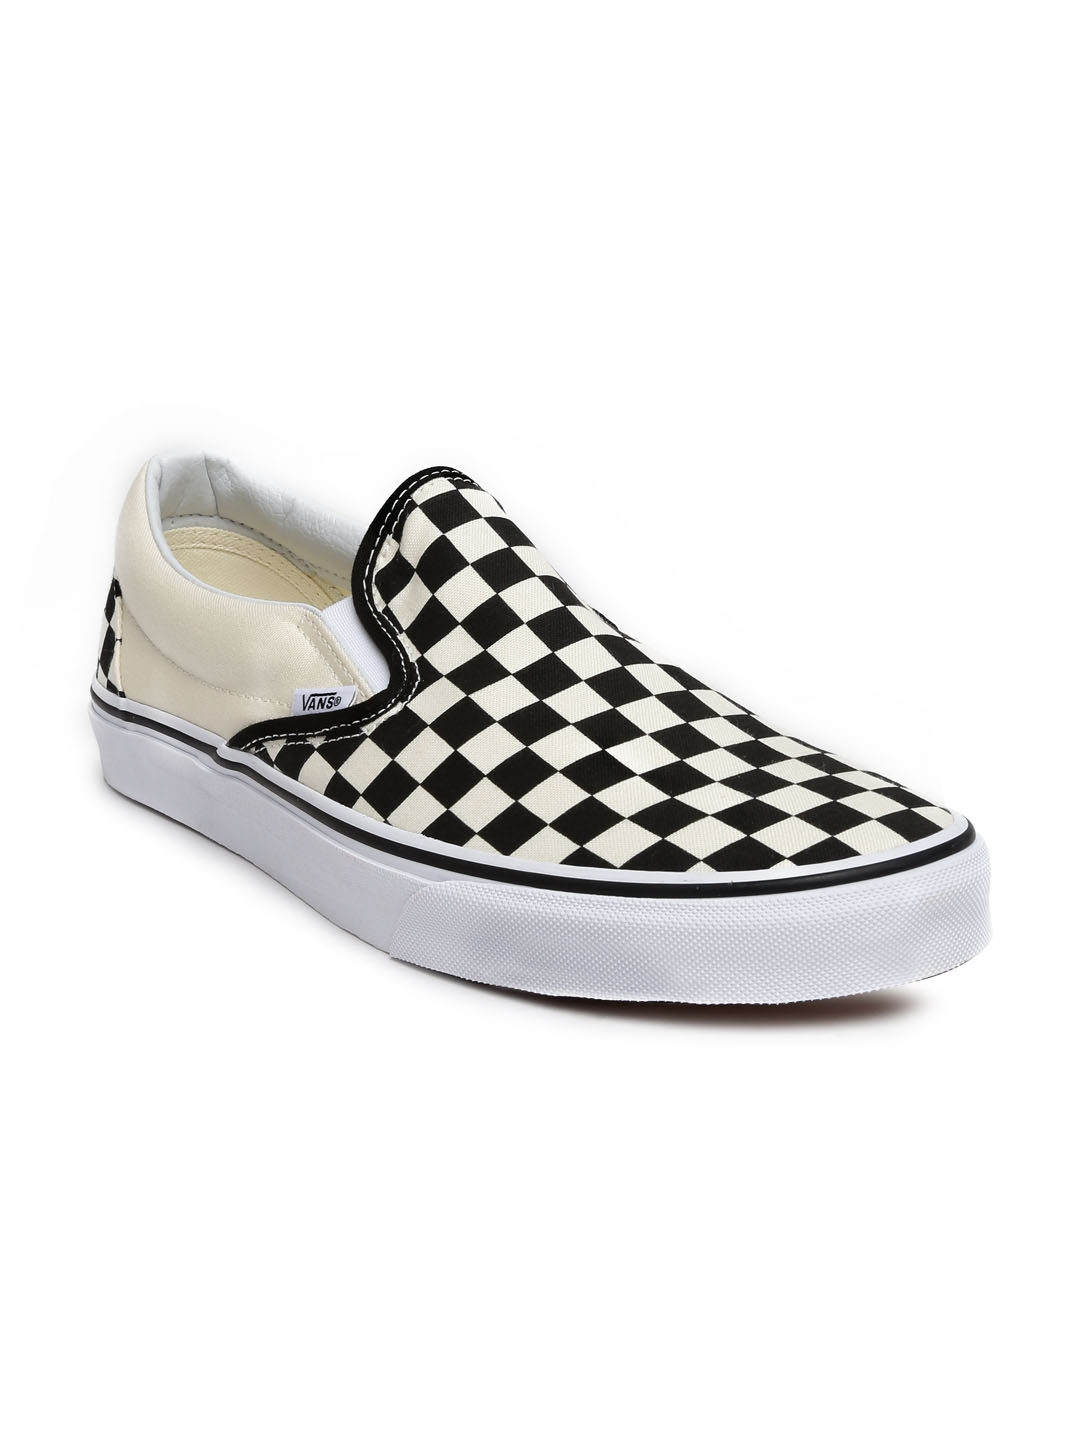 3f570242e89 Buy Vans Men Black   Off White Checked Classic Slip On Sneakers ...